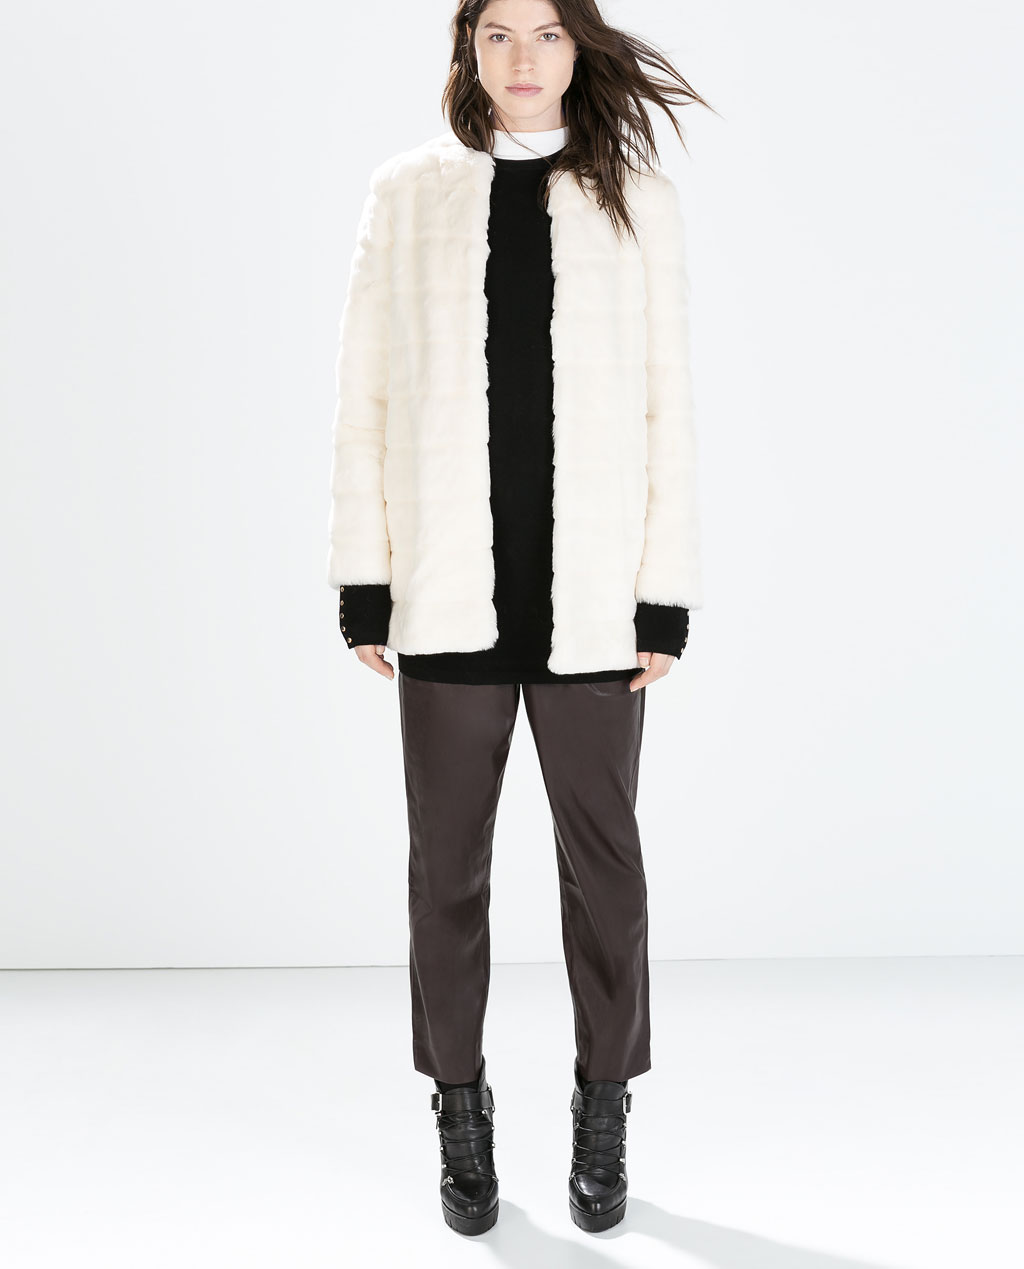 x Second-hand Zara coats for women MY SELECTION item(s) Create an alert. Don't miss that special item! Create a personalised alert to keep up to date with products matching your requirements when they come online. Close. Women's clothes size ZARA. Faux fur coat. Size: M International.